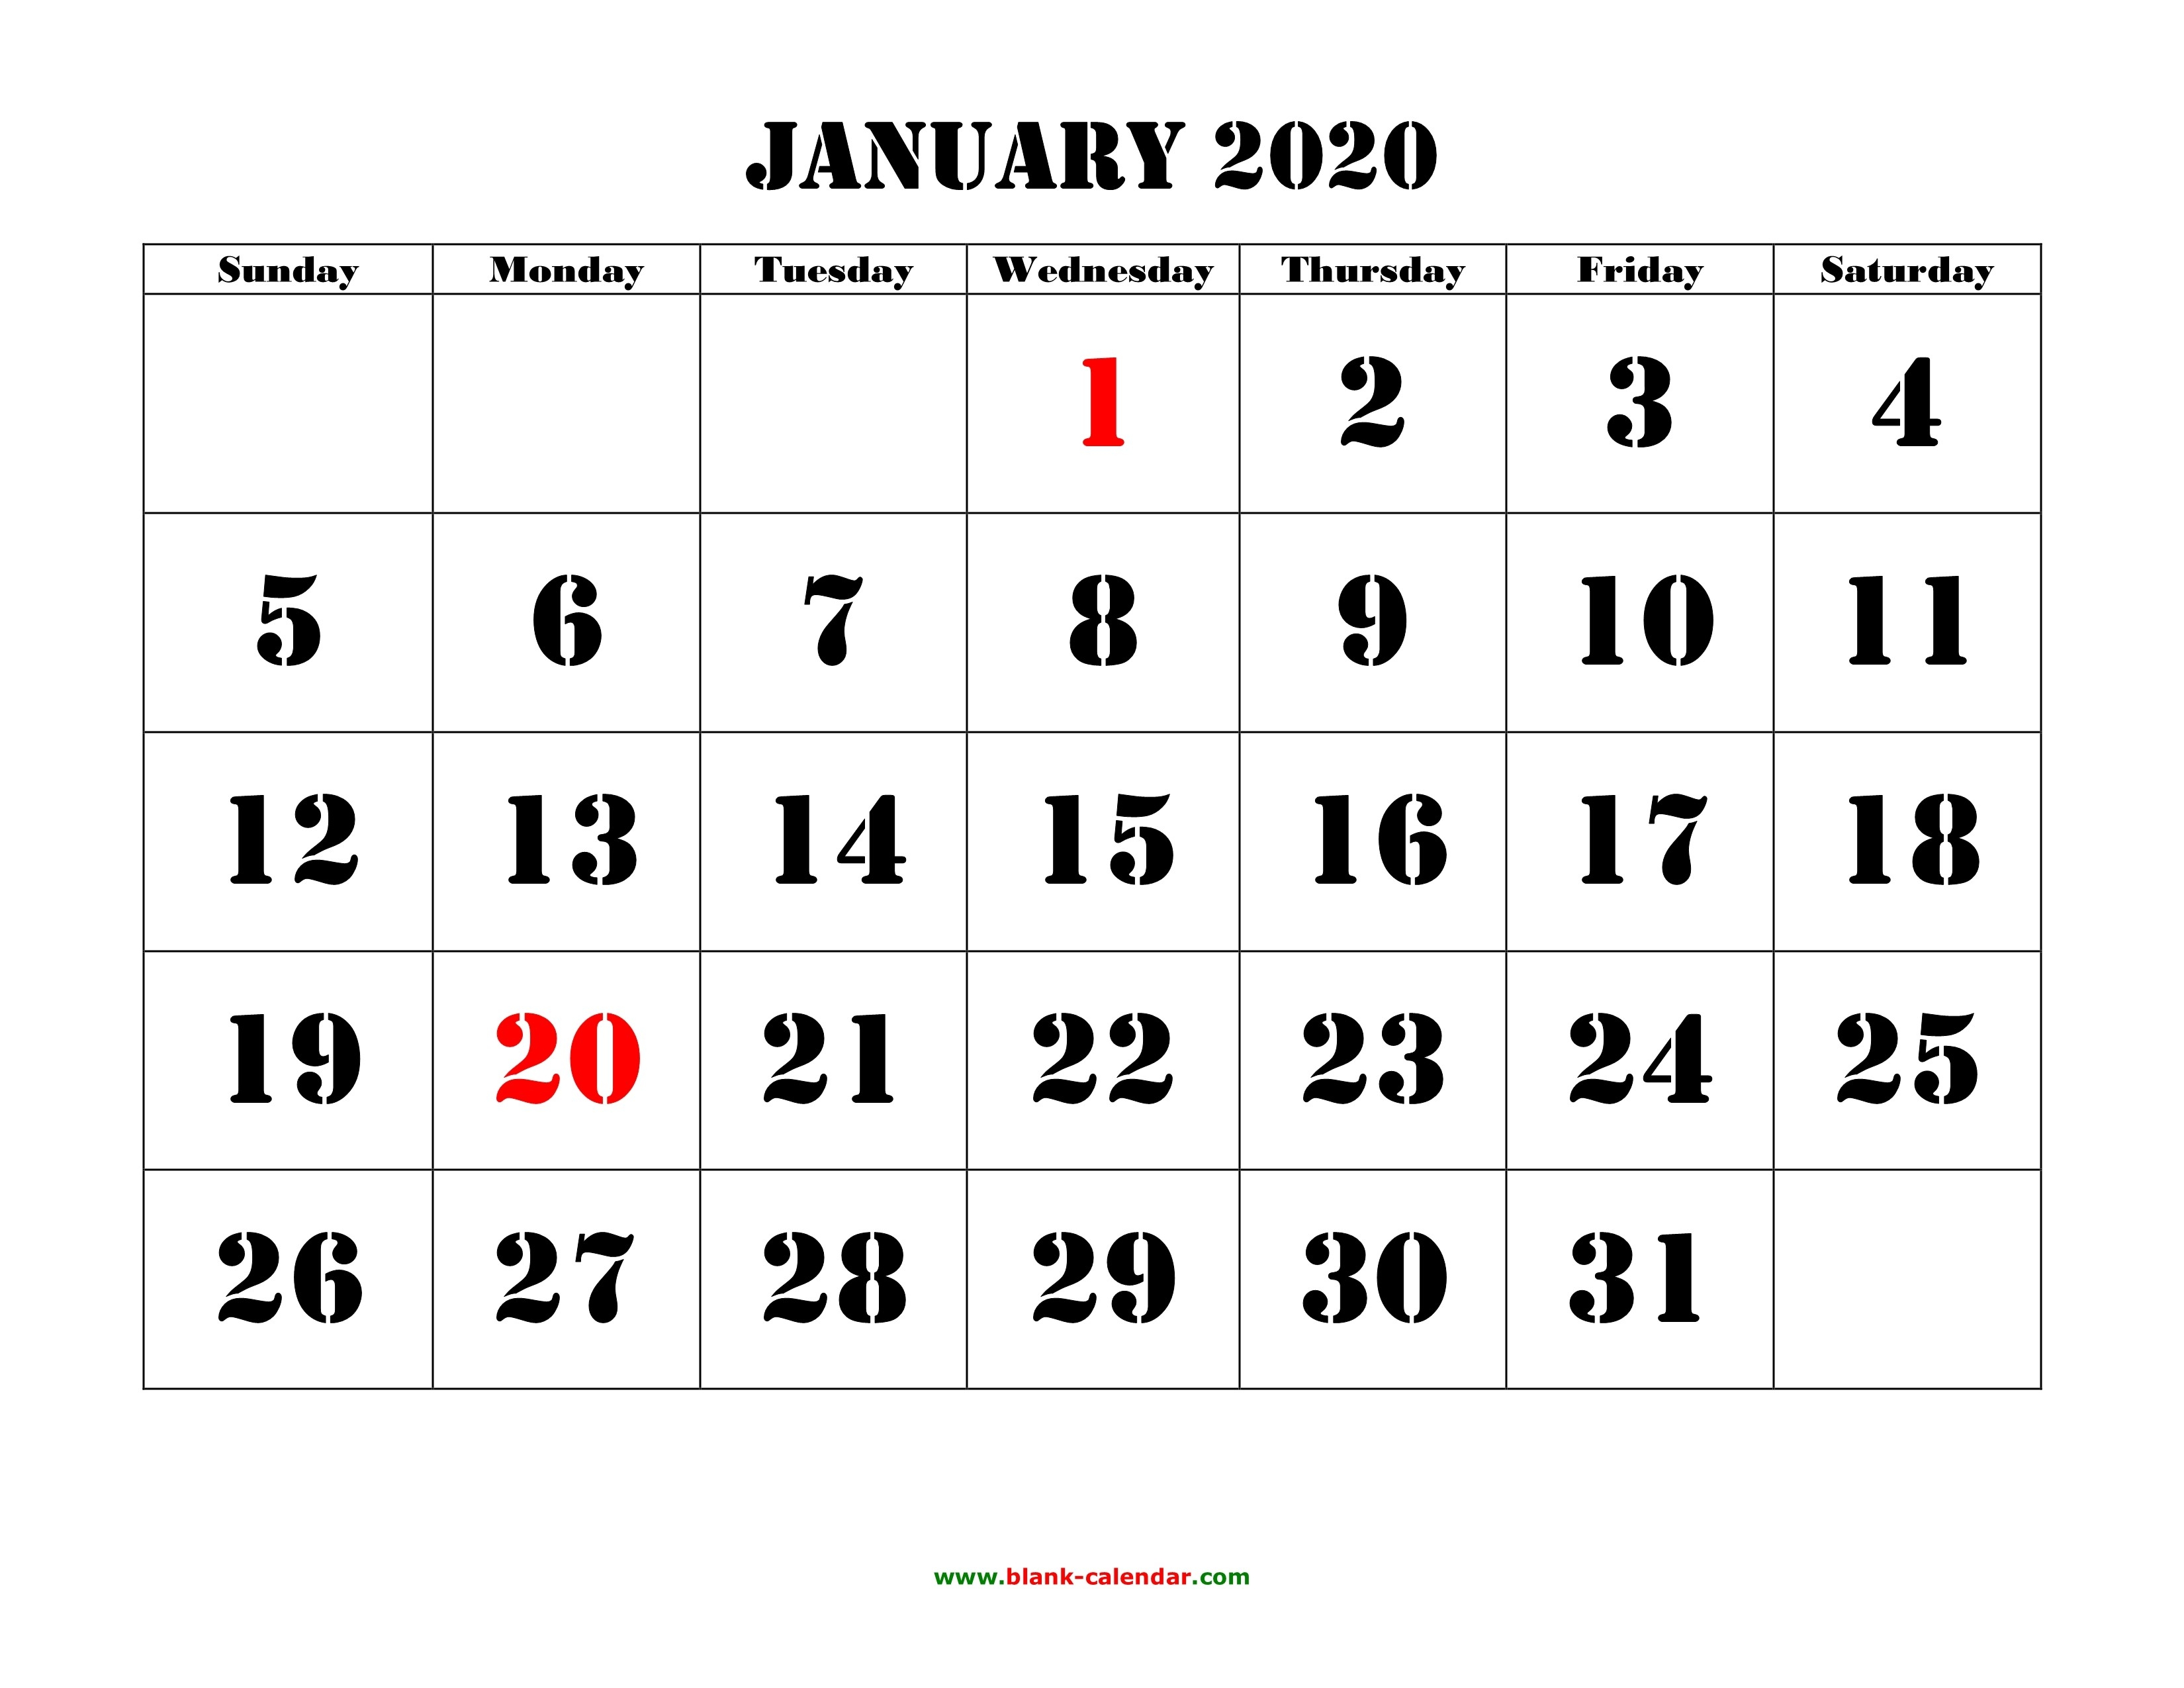 Printable Calendar 2020 | Free Download Yearly Calendar-Calendar Templates 3 Months Per Page 2020